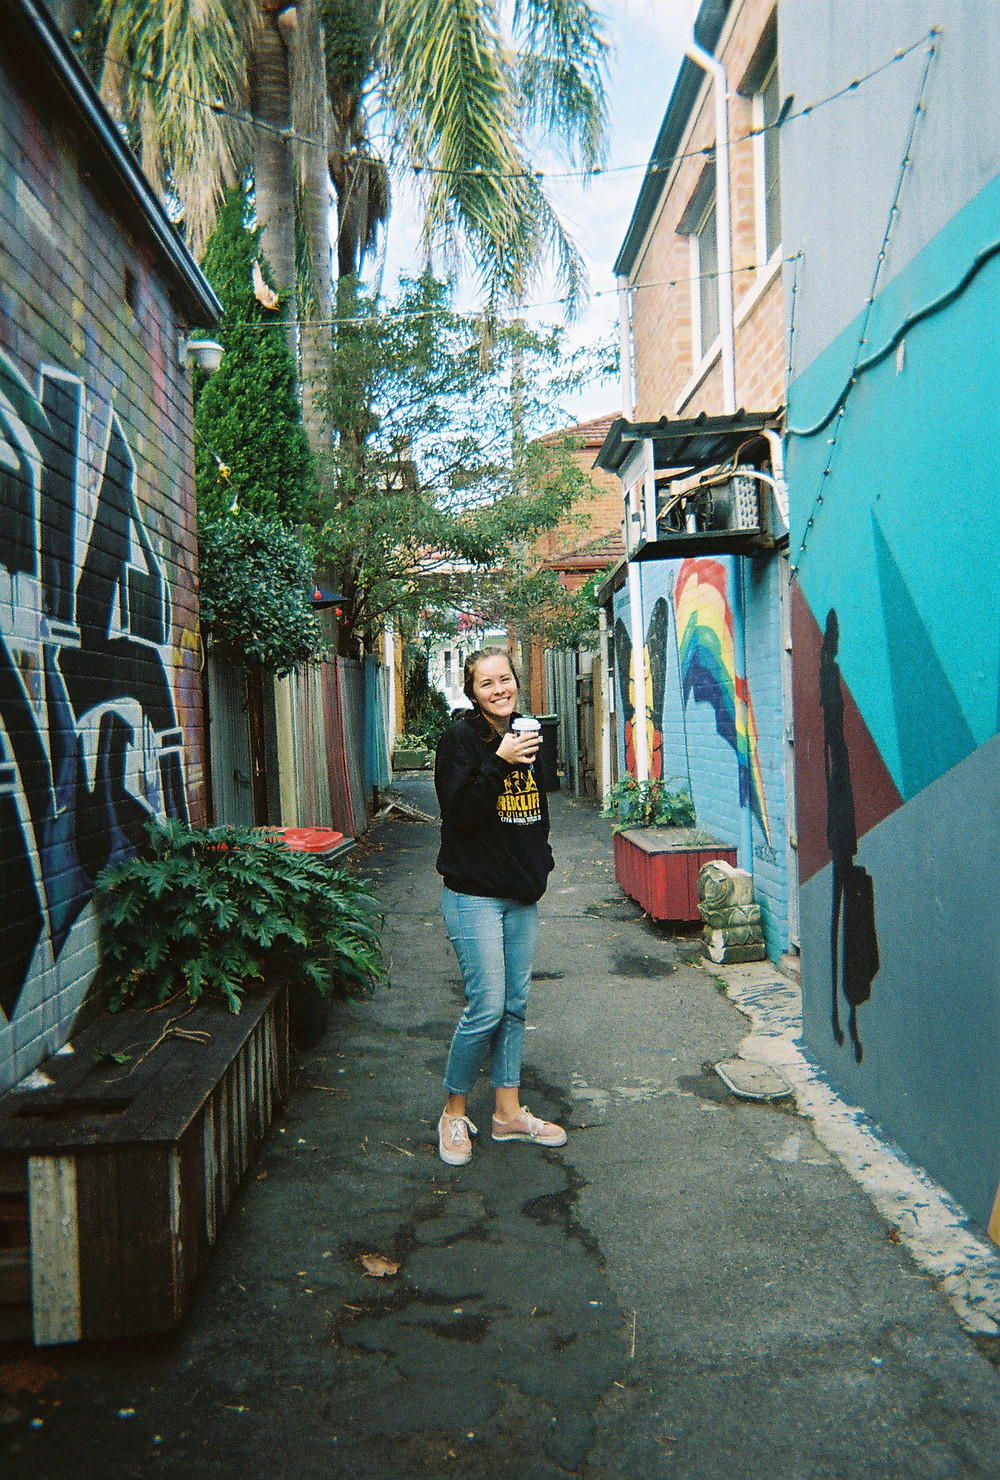 Standing in an alleyway after a coffee in my favourite neighbourhood.